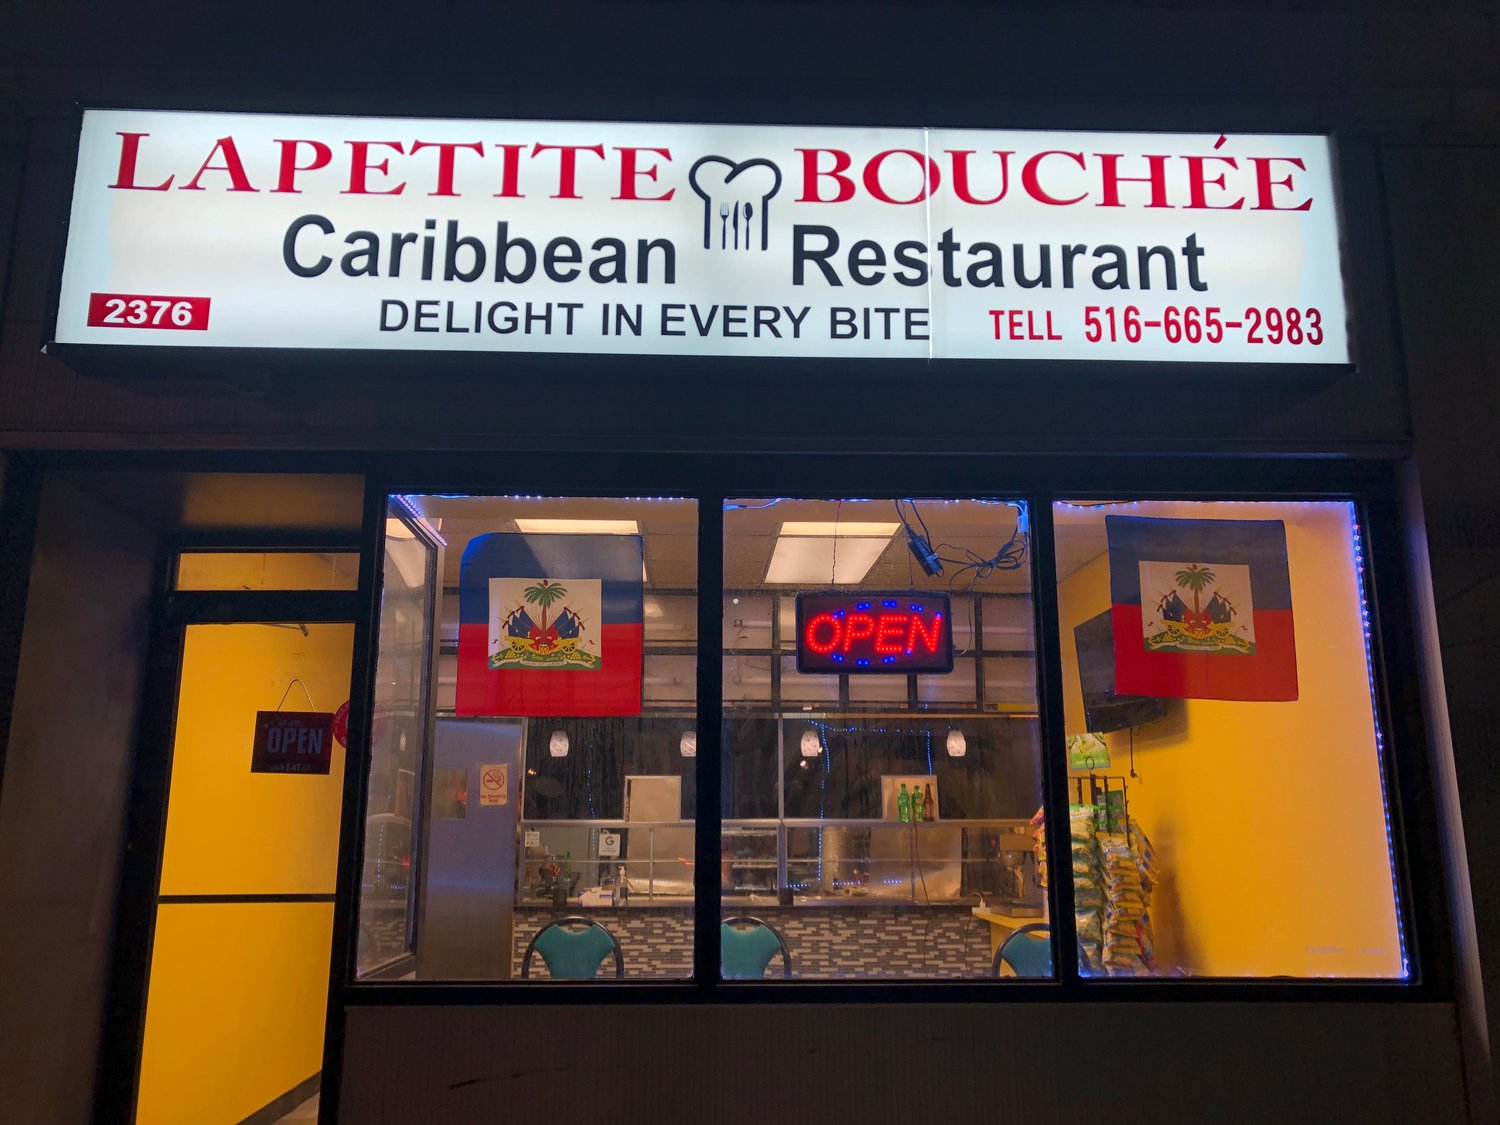 Dina Adams, the owner of La Petite Bouchée Caribbean restaurant in Baldwin, said she opened for the first time seven weeks ago.